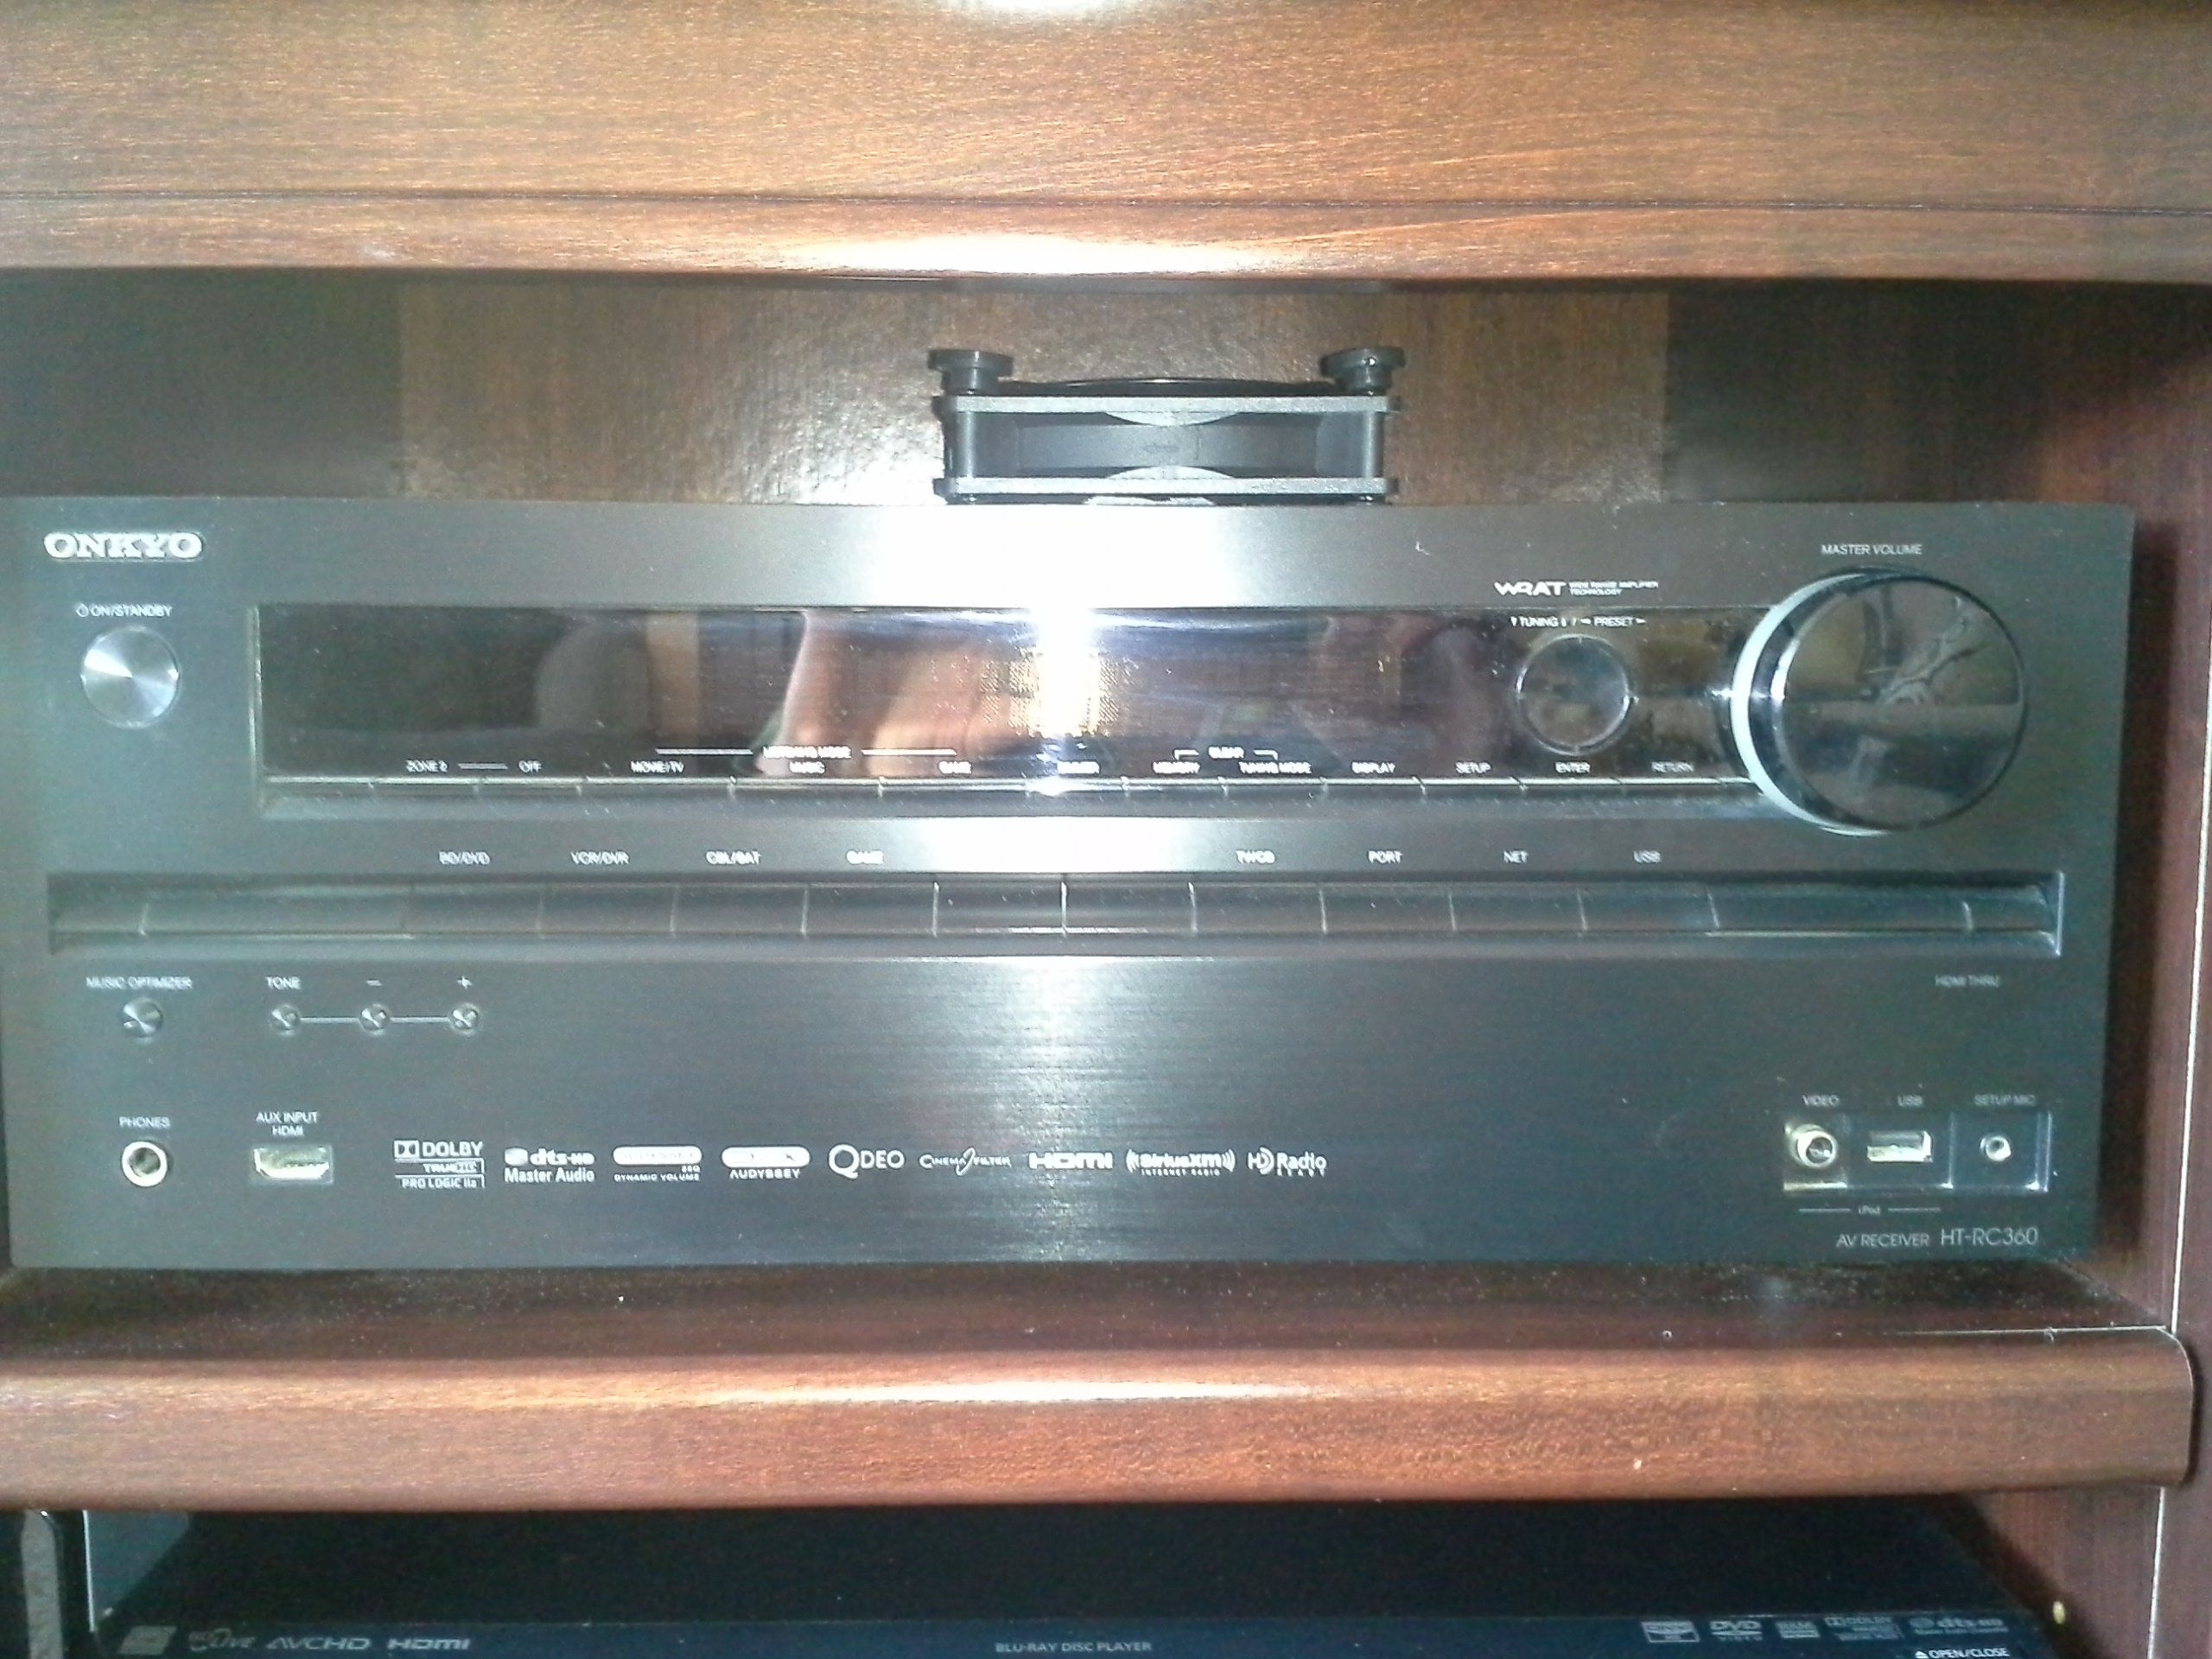 Onkyo HT-RC360/370 - Page 25 - AVS Forum | Home Theater Discussions ...